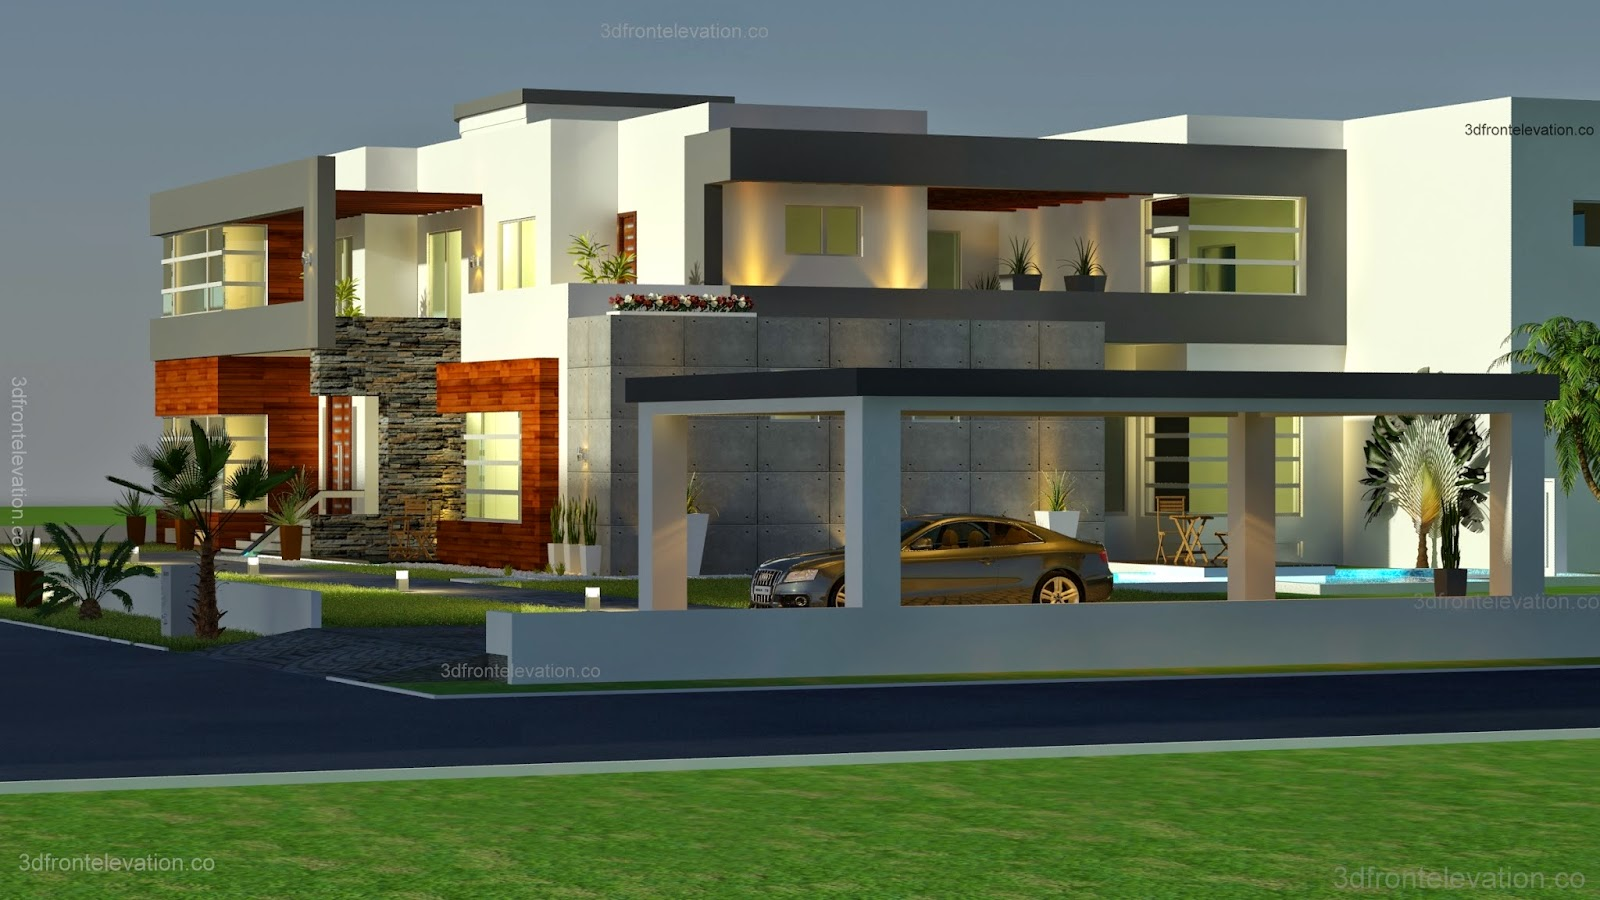 Square Meter Modern Contemporary House Plan Design 3d Front Elevation ...